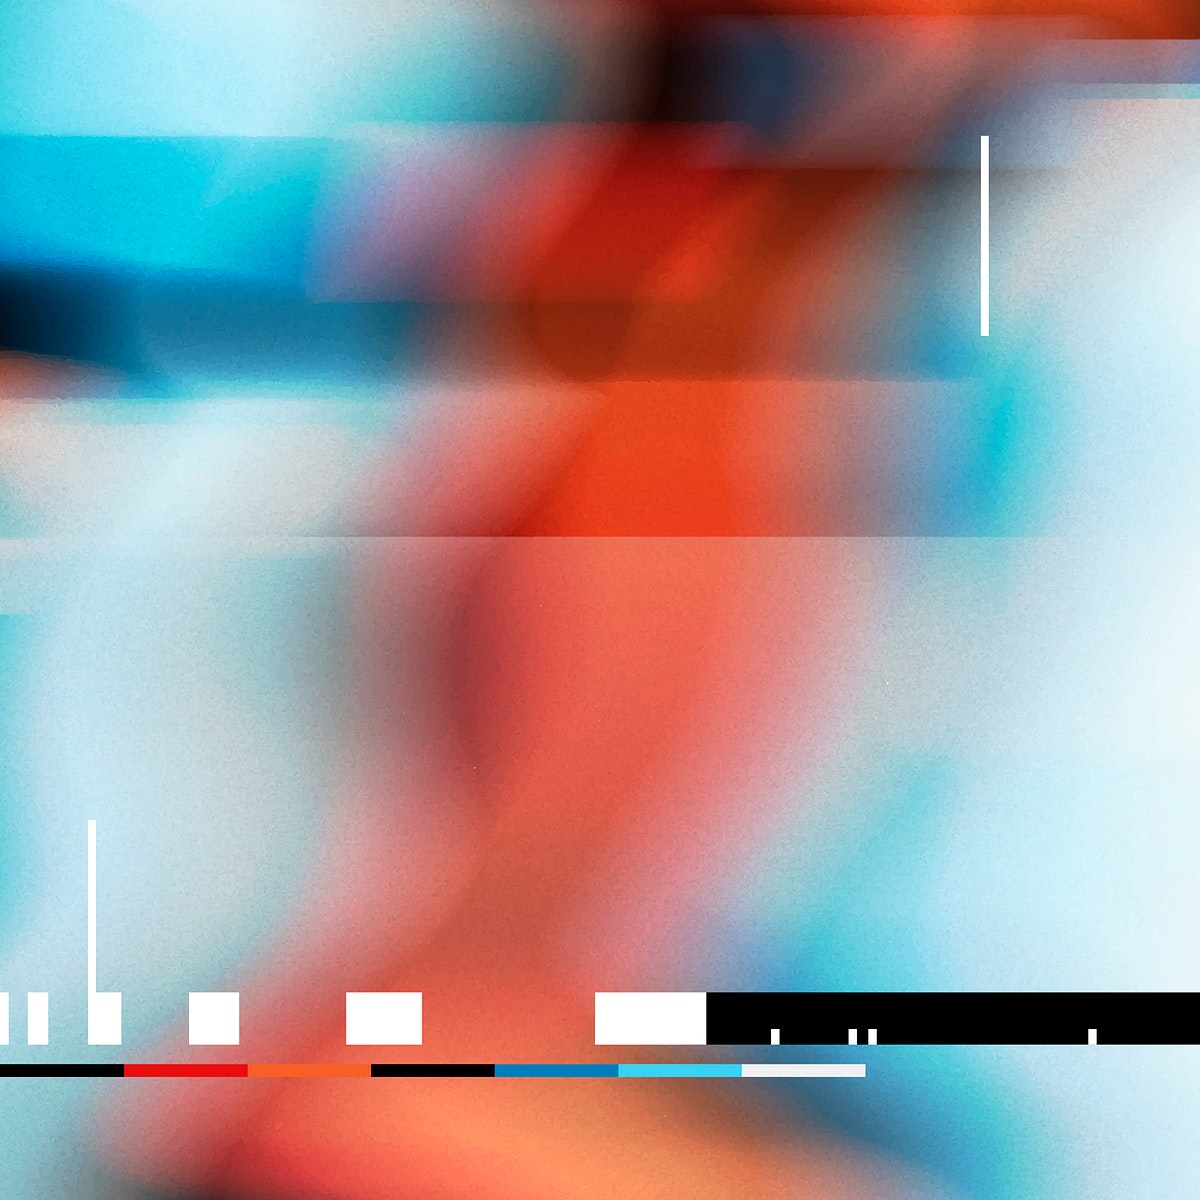 Colorful glitch effect distortion background vector